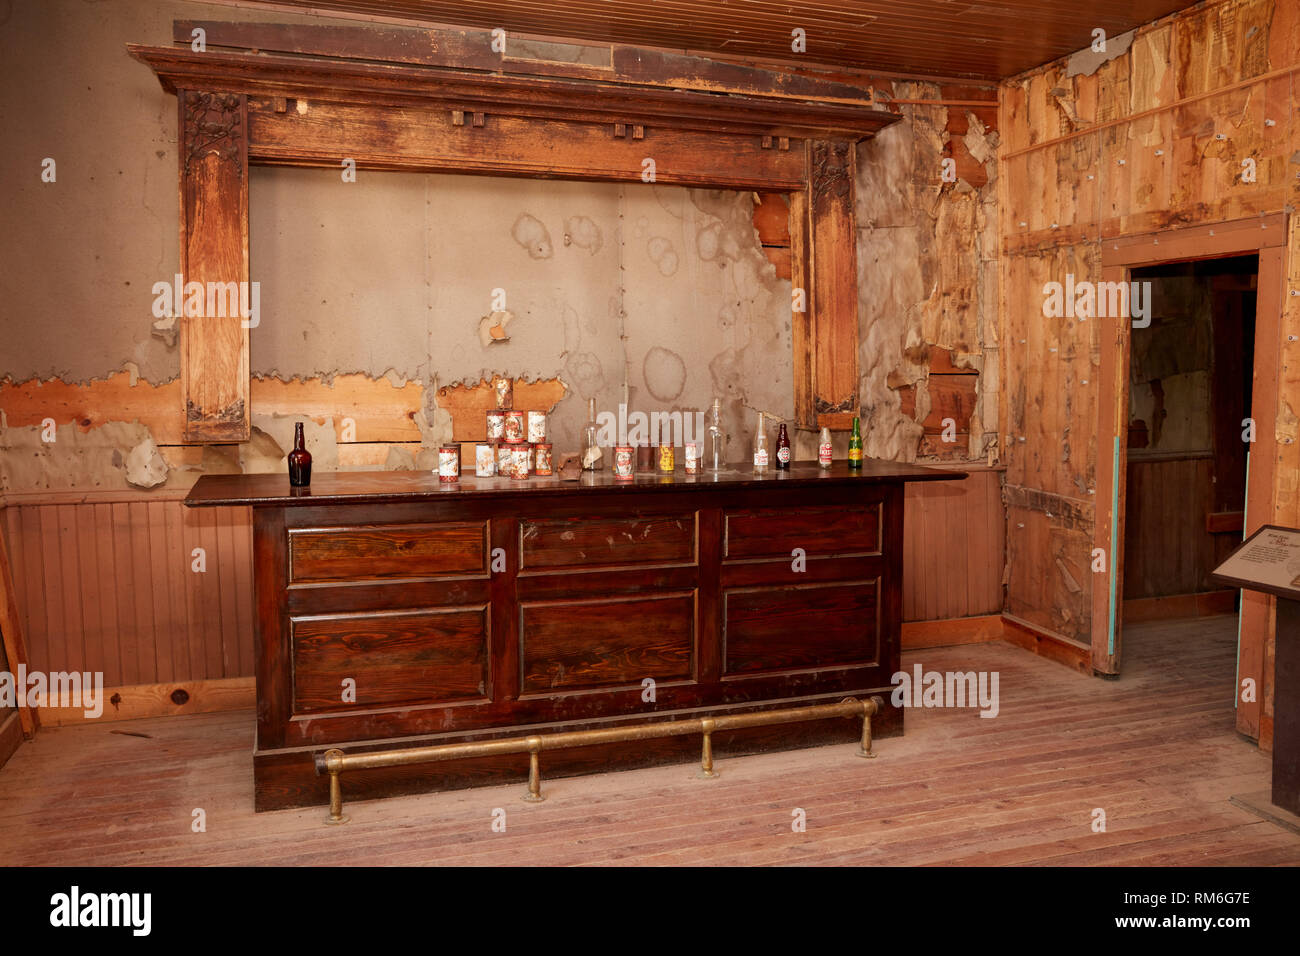 The bar at kelley's saloon in the ghost town of Garnet, Montana - Stock Image